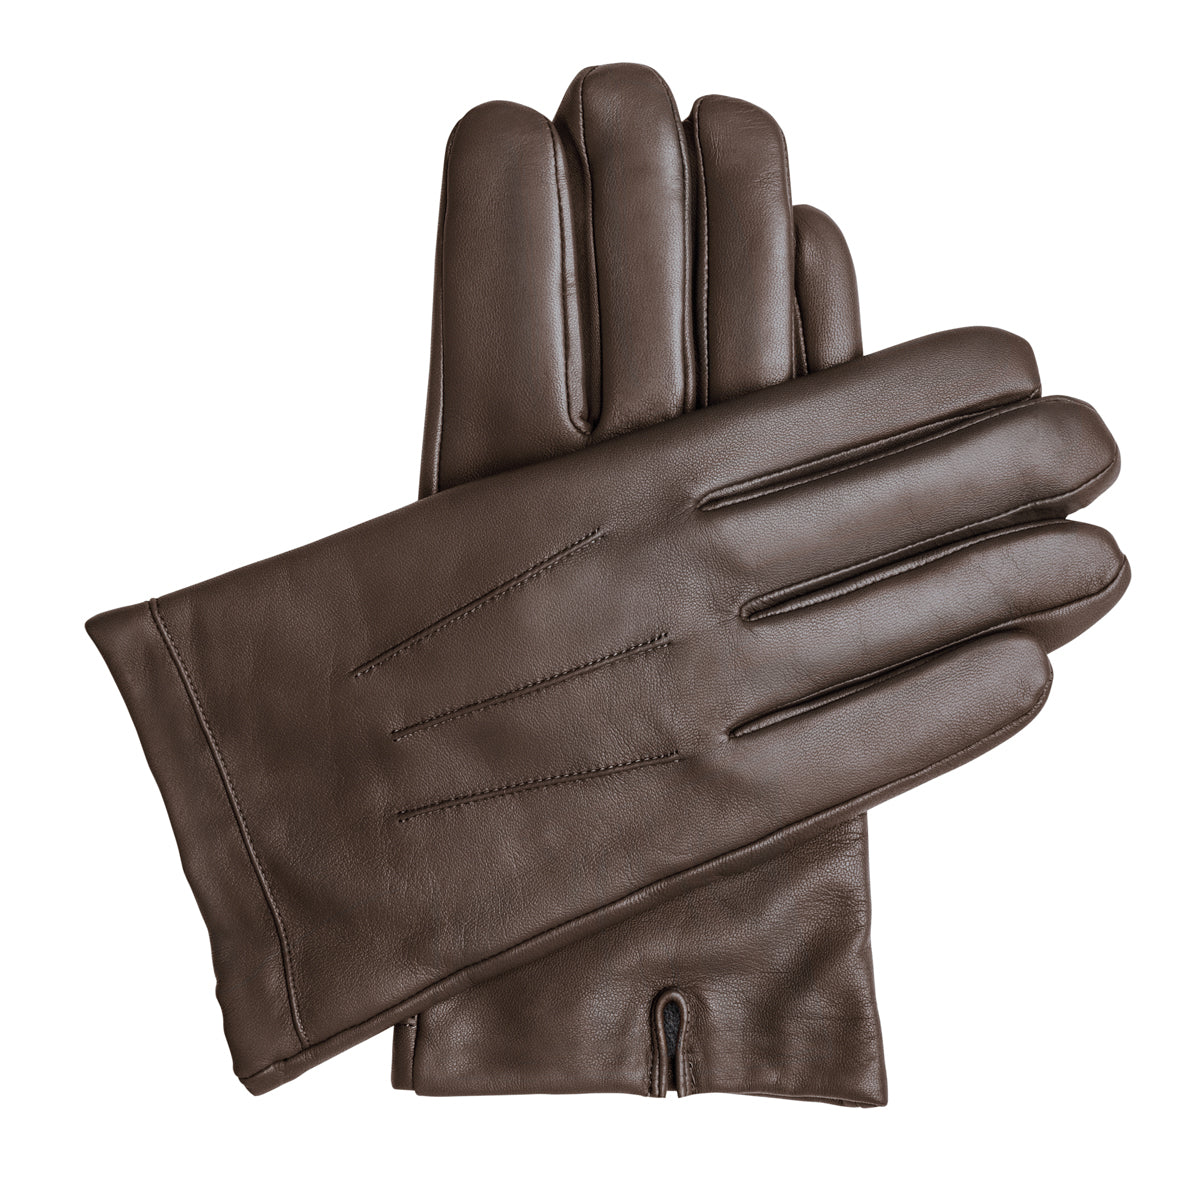 Men's Vegan Leather Gloves - Brown, DH-VLM-BRNS, DH-VLM-BRNM, DH-VLM-BRNL, DH-VLM-BRNXL